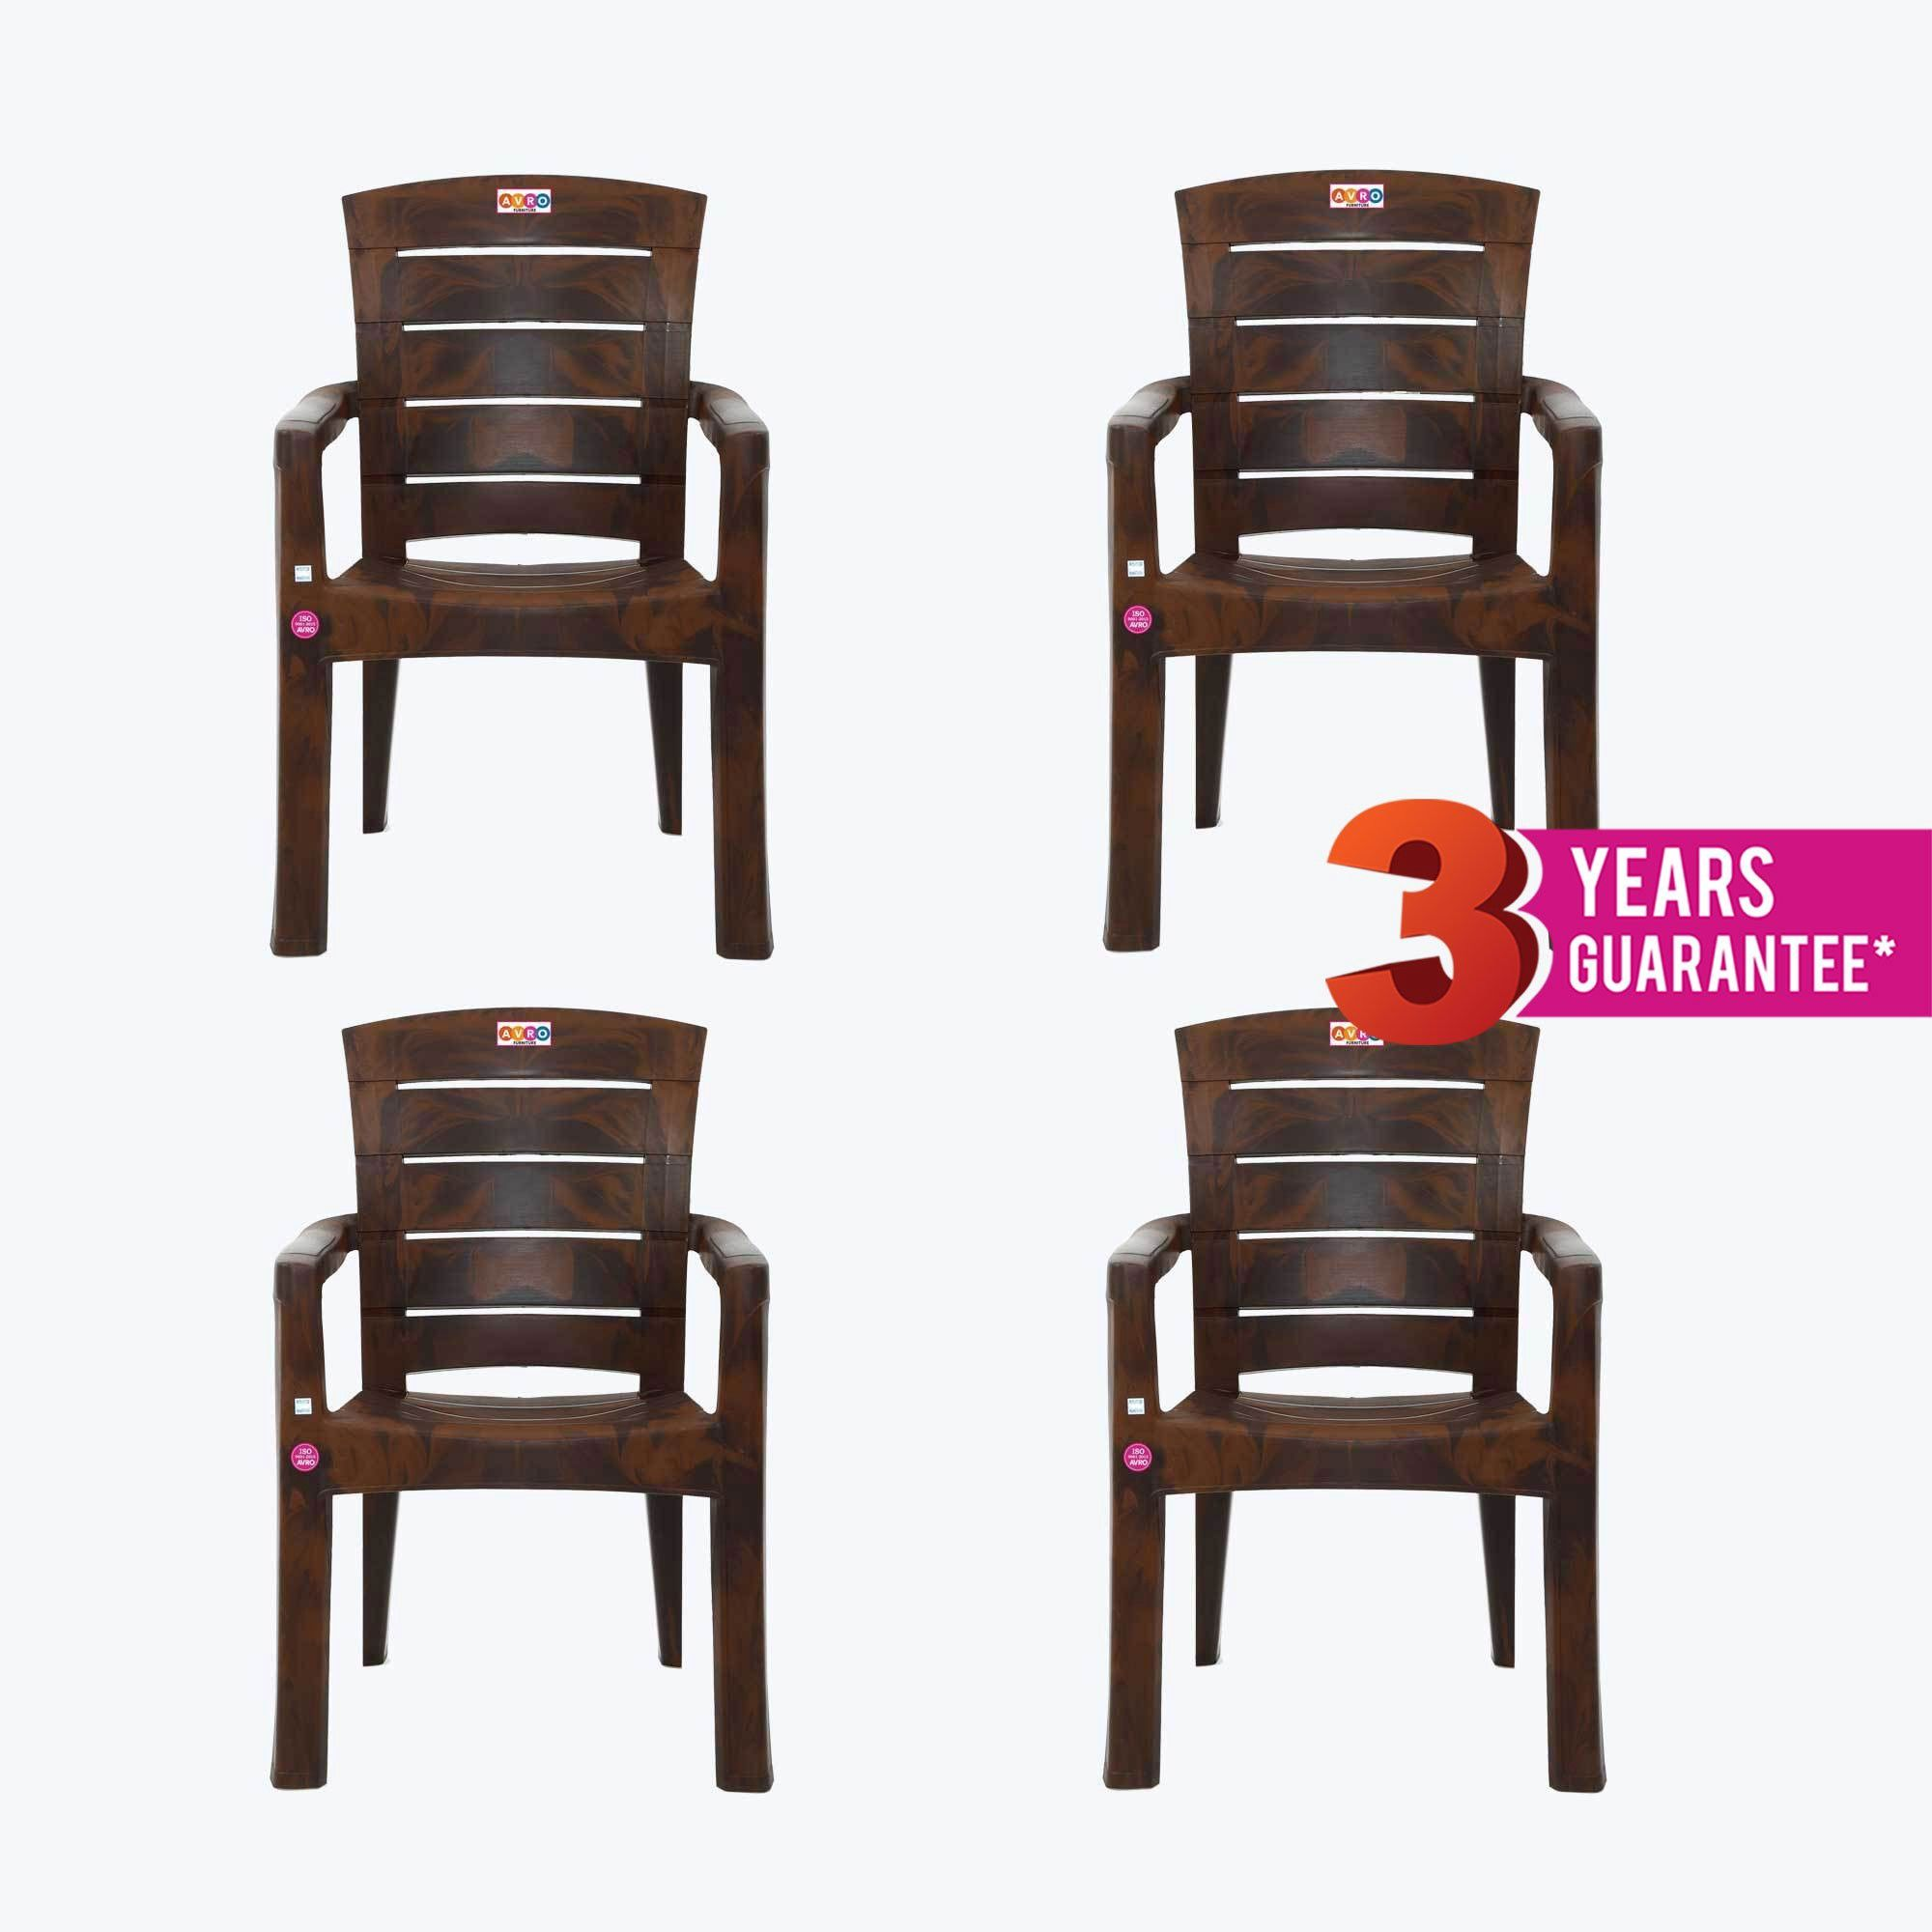 Top Plastic Chairs Which Use Easily In Home Balcony And Garden In India Plastic Chair Plastic Dining Chairs Chair